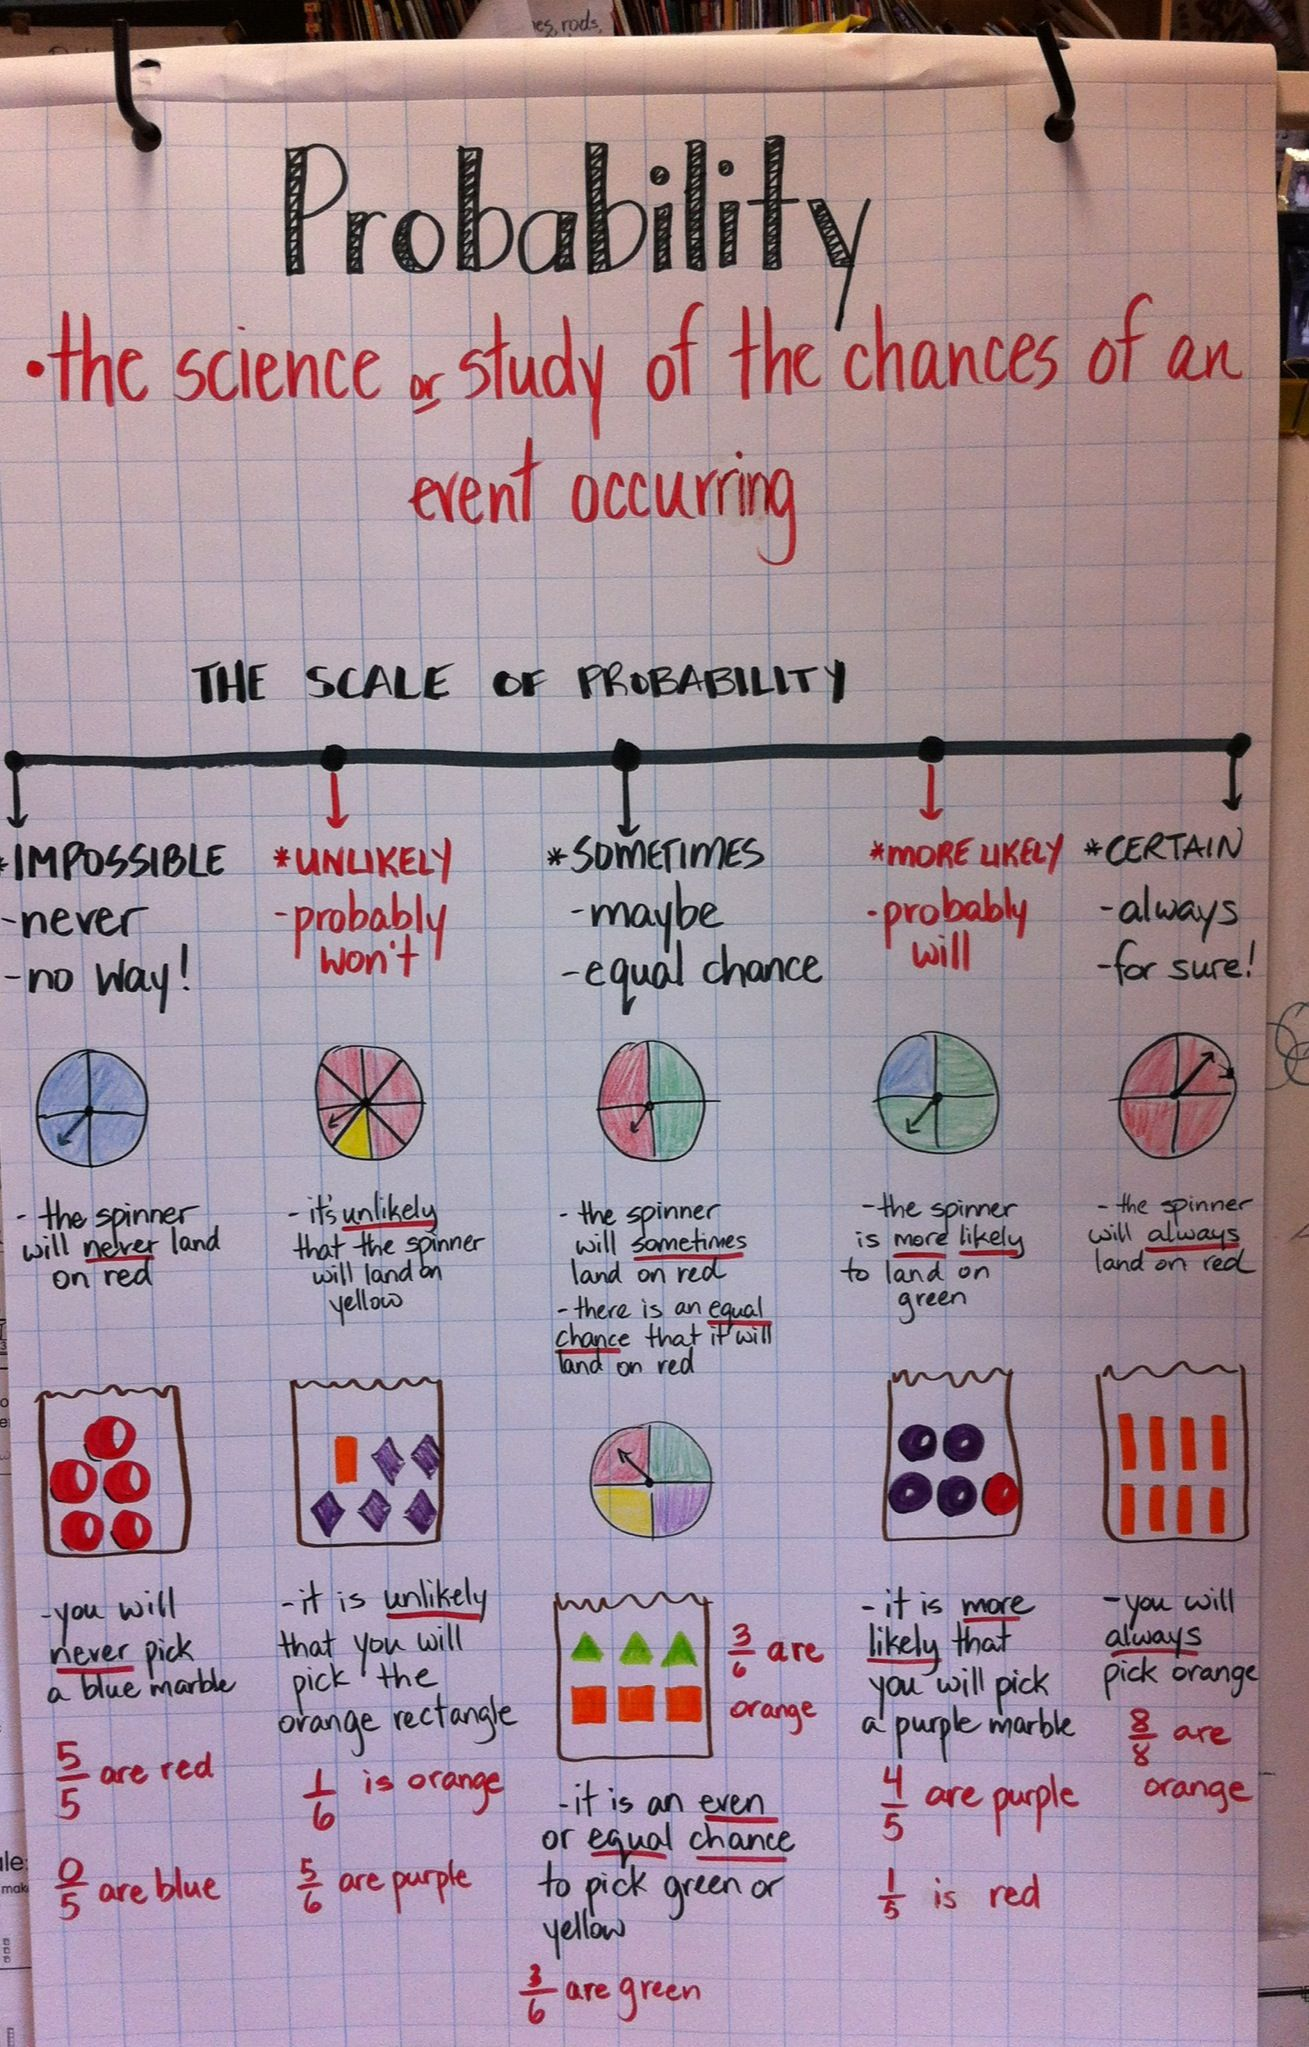 Probability The Scale Of Probability Illustrated With